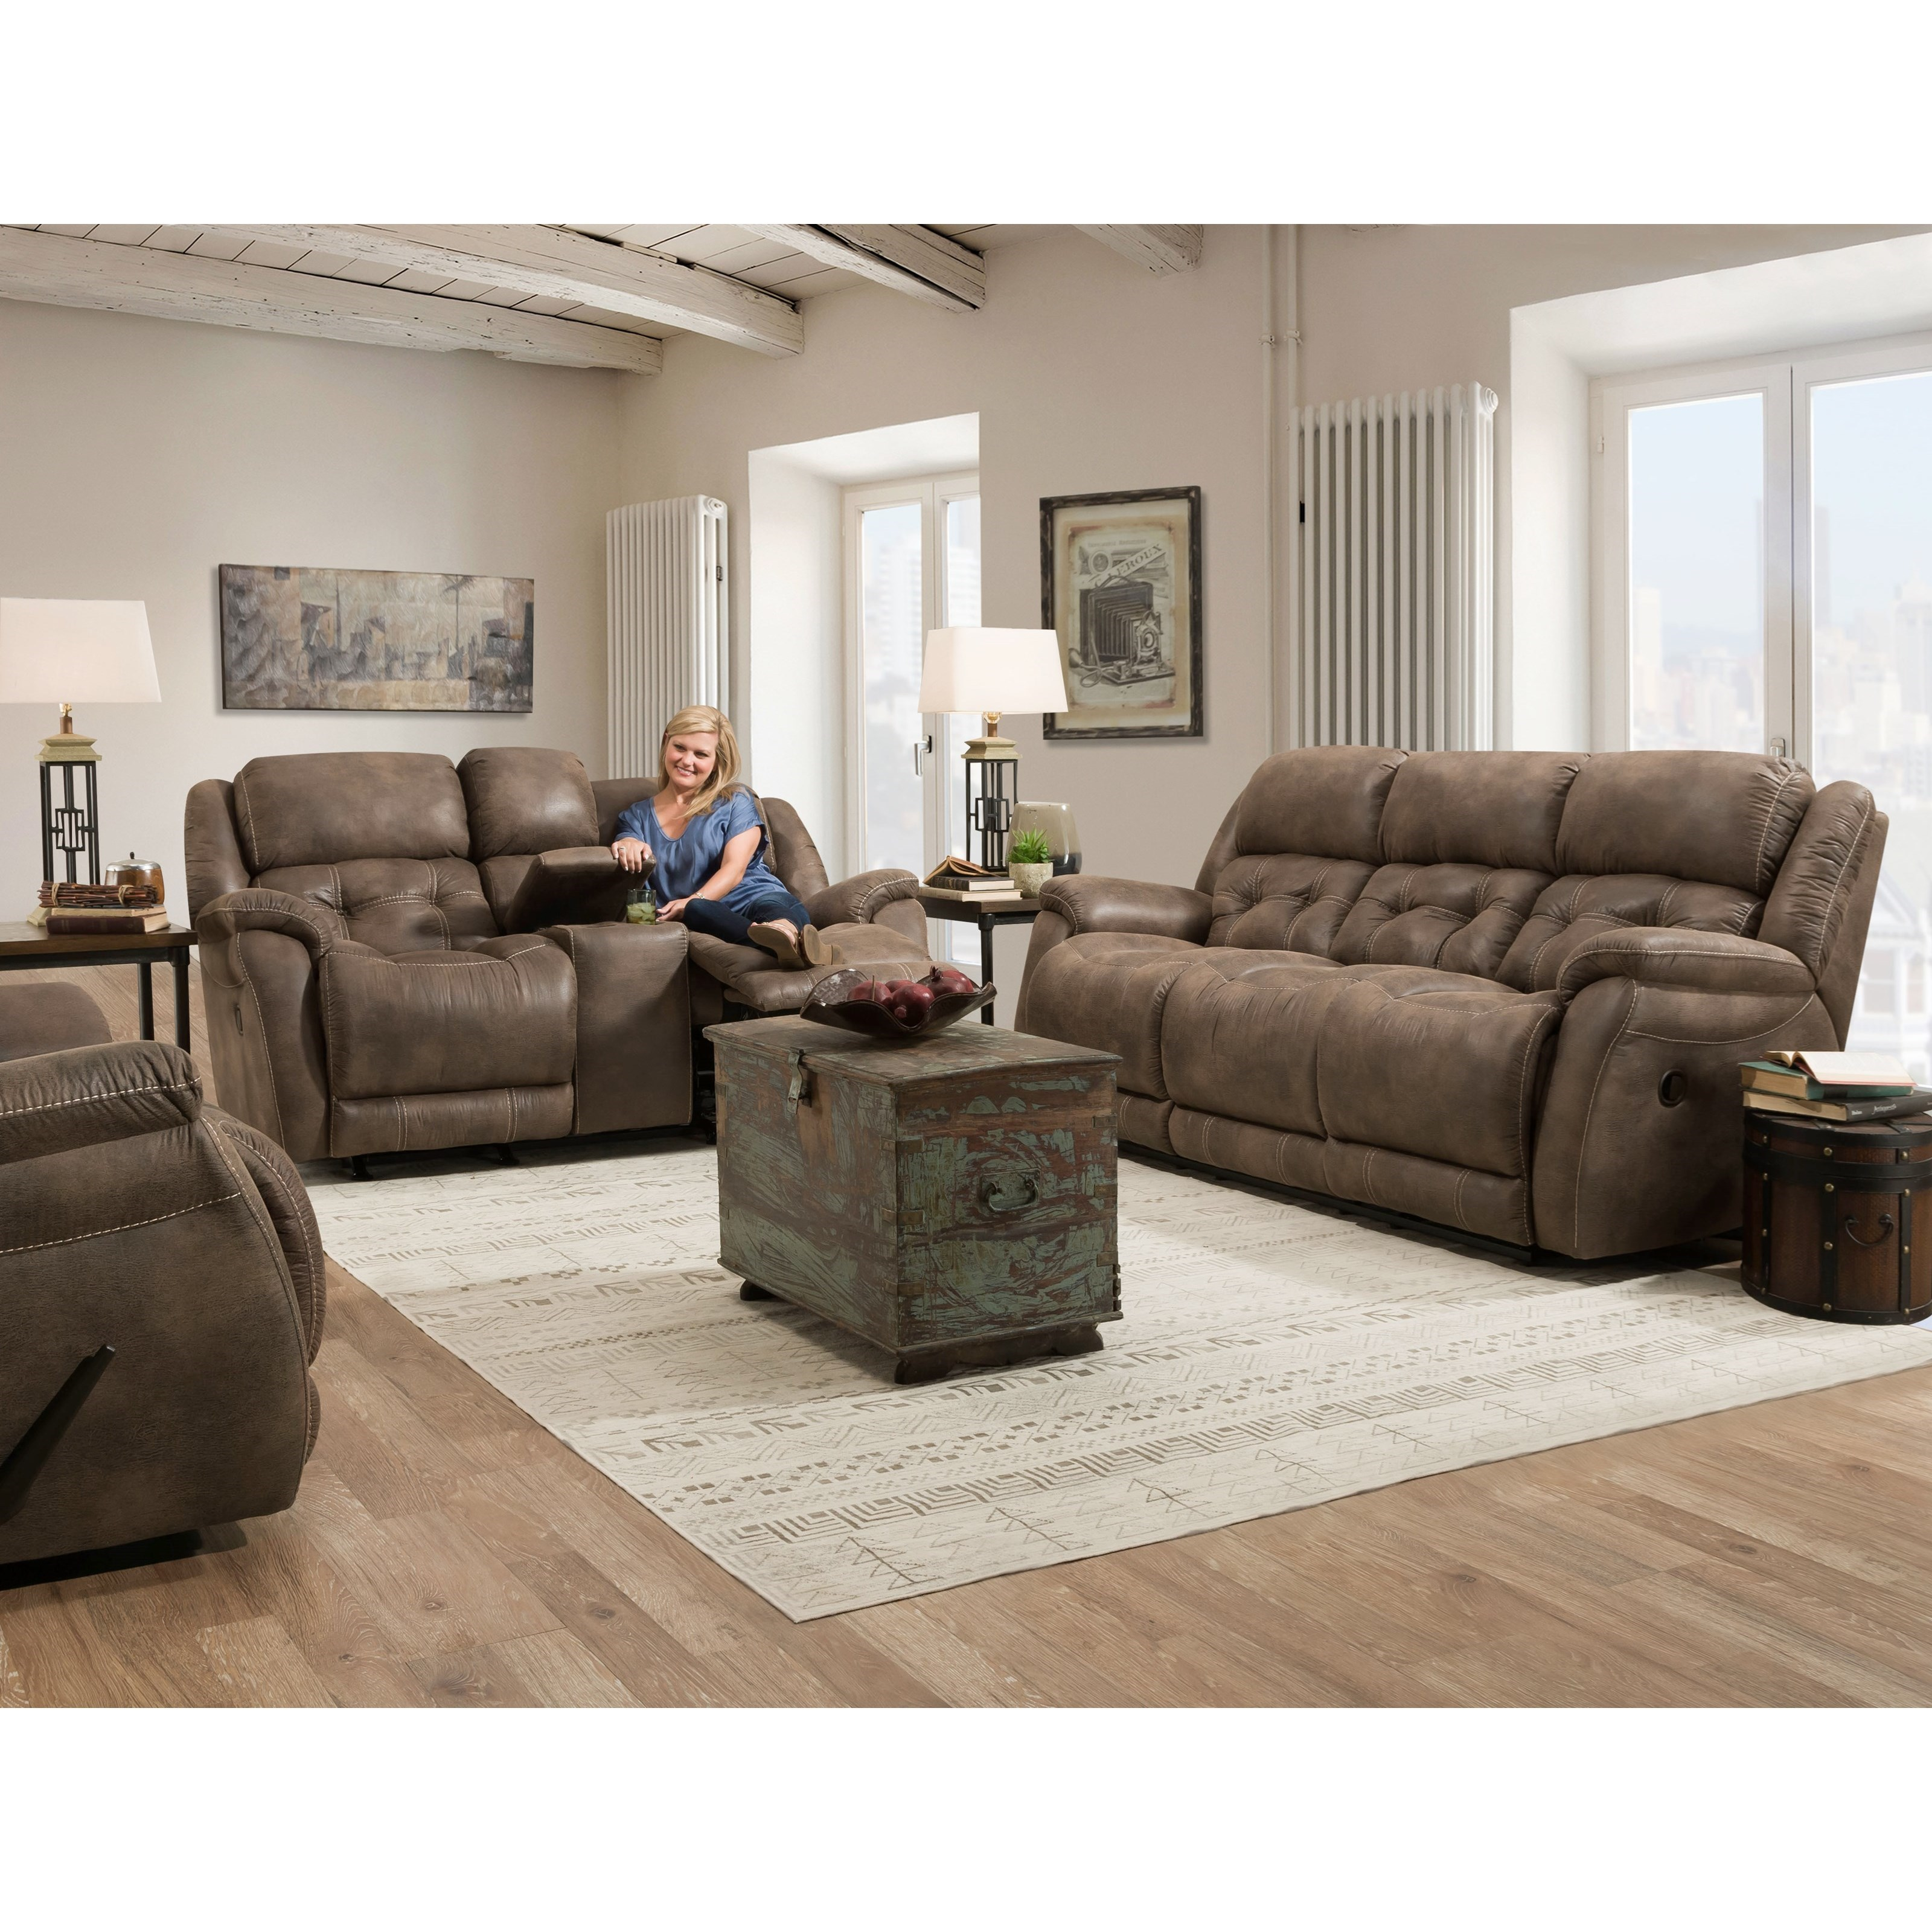 McLean Reclining Living Room Group by HomeStretch at Standard Furniture